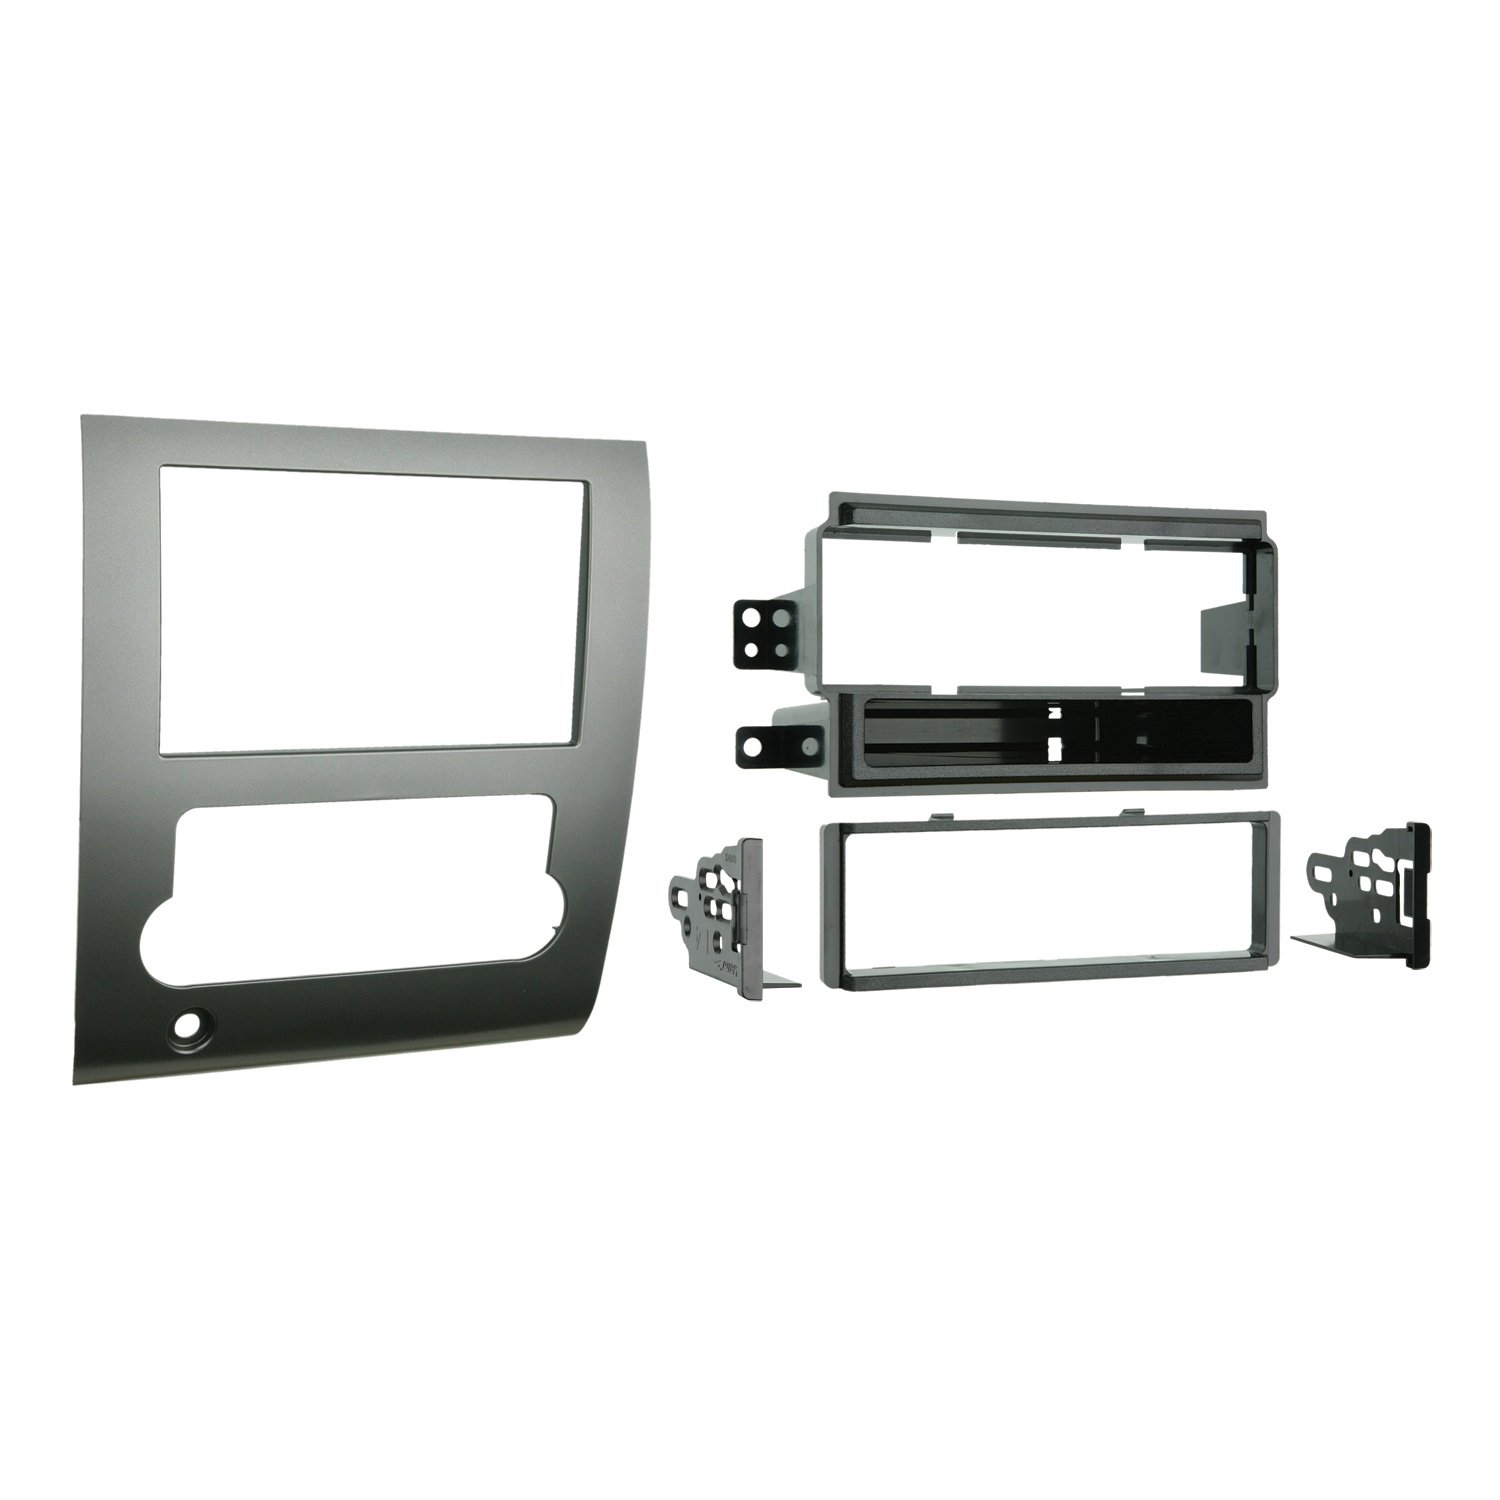 Metra 99-7424 Single DIN/Double DIN Installation Kit for 2008-up Nissan Titan (Silver) Metra Electronics Corporation